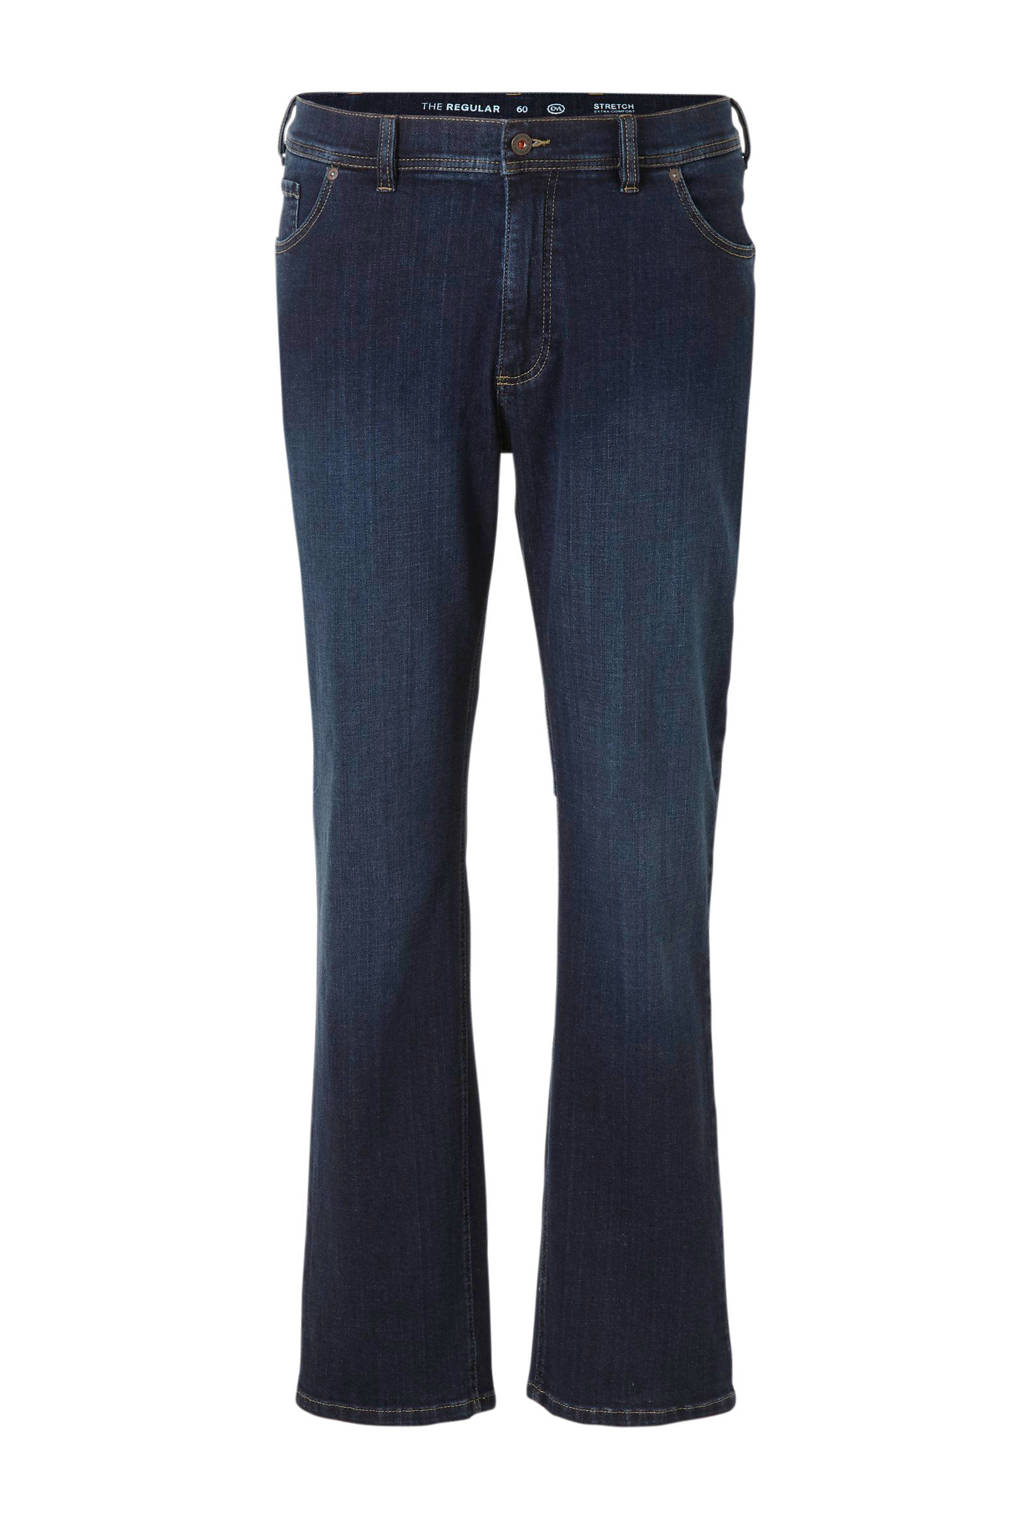 C&A regular fit jeans donkerblauw, Donkerblauw